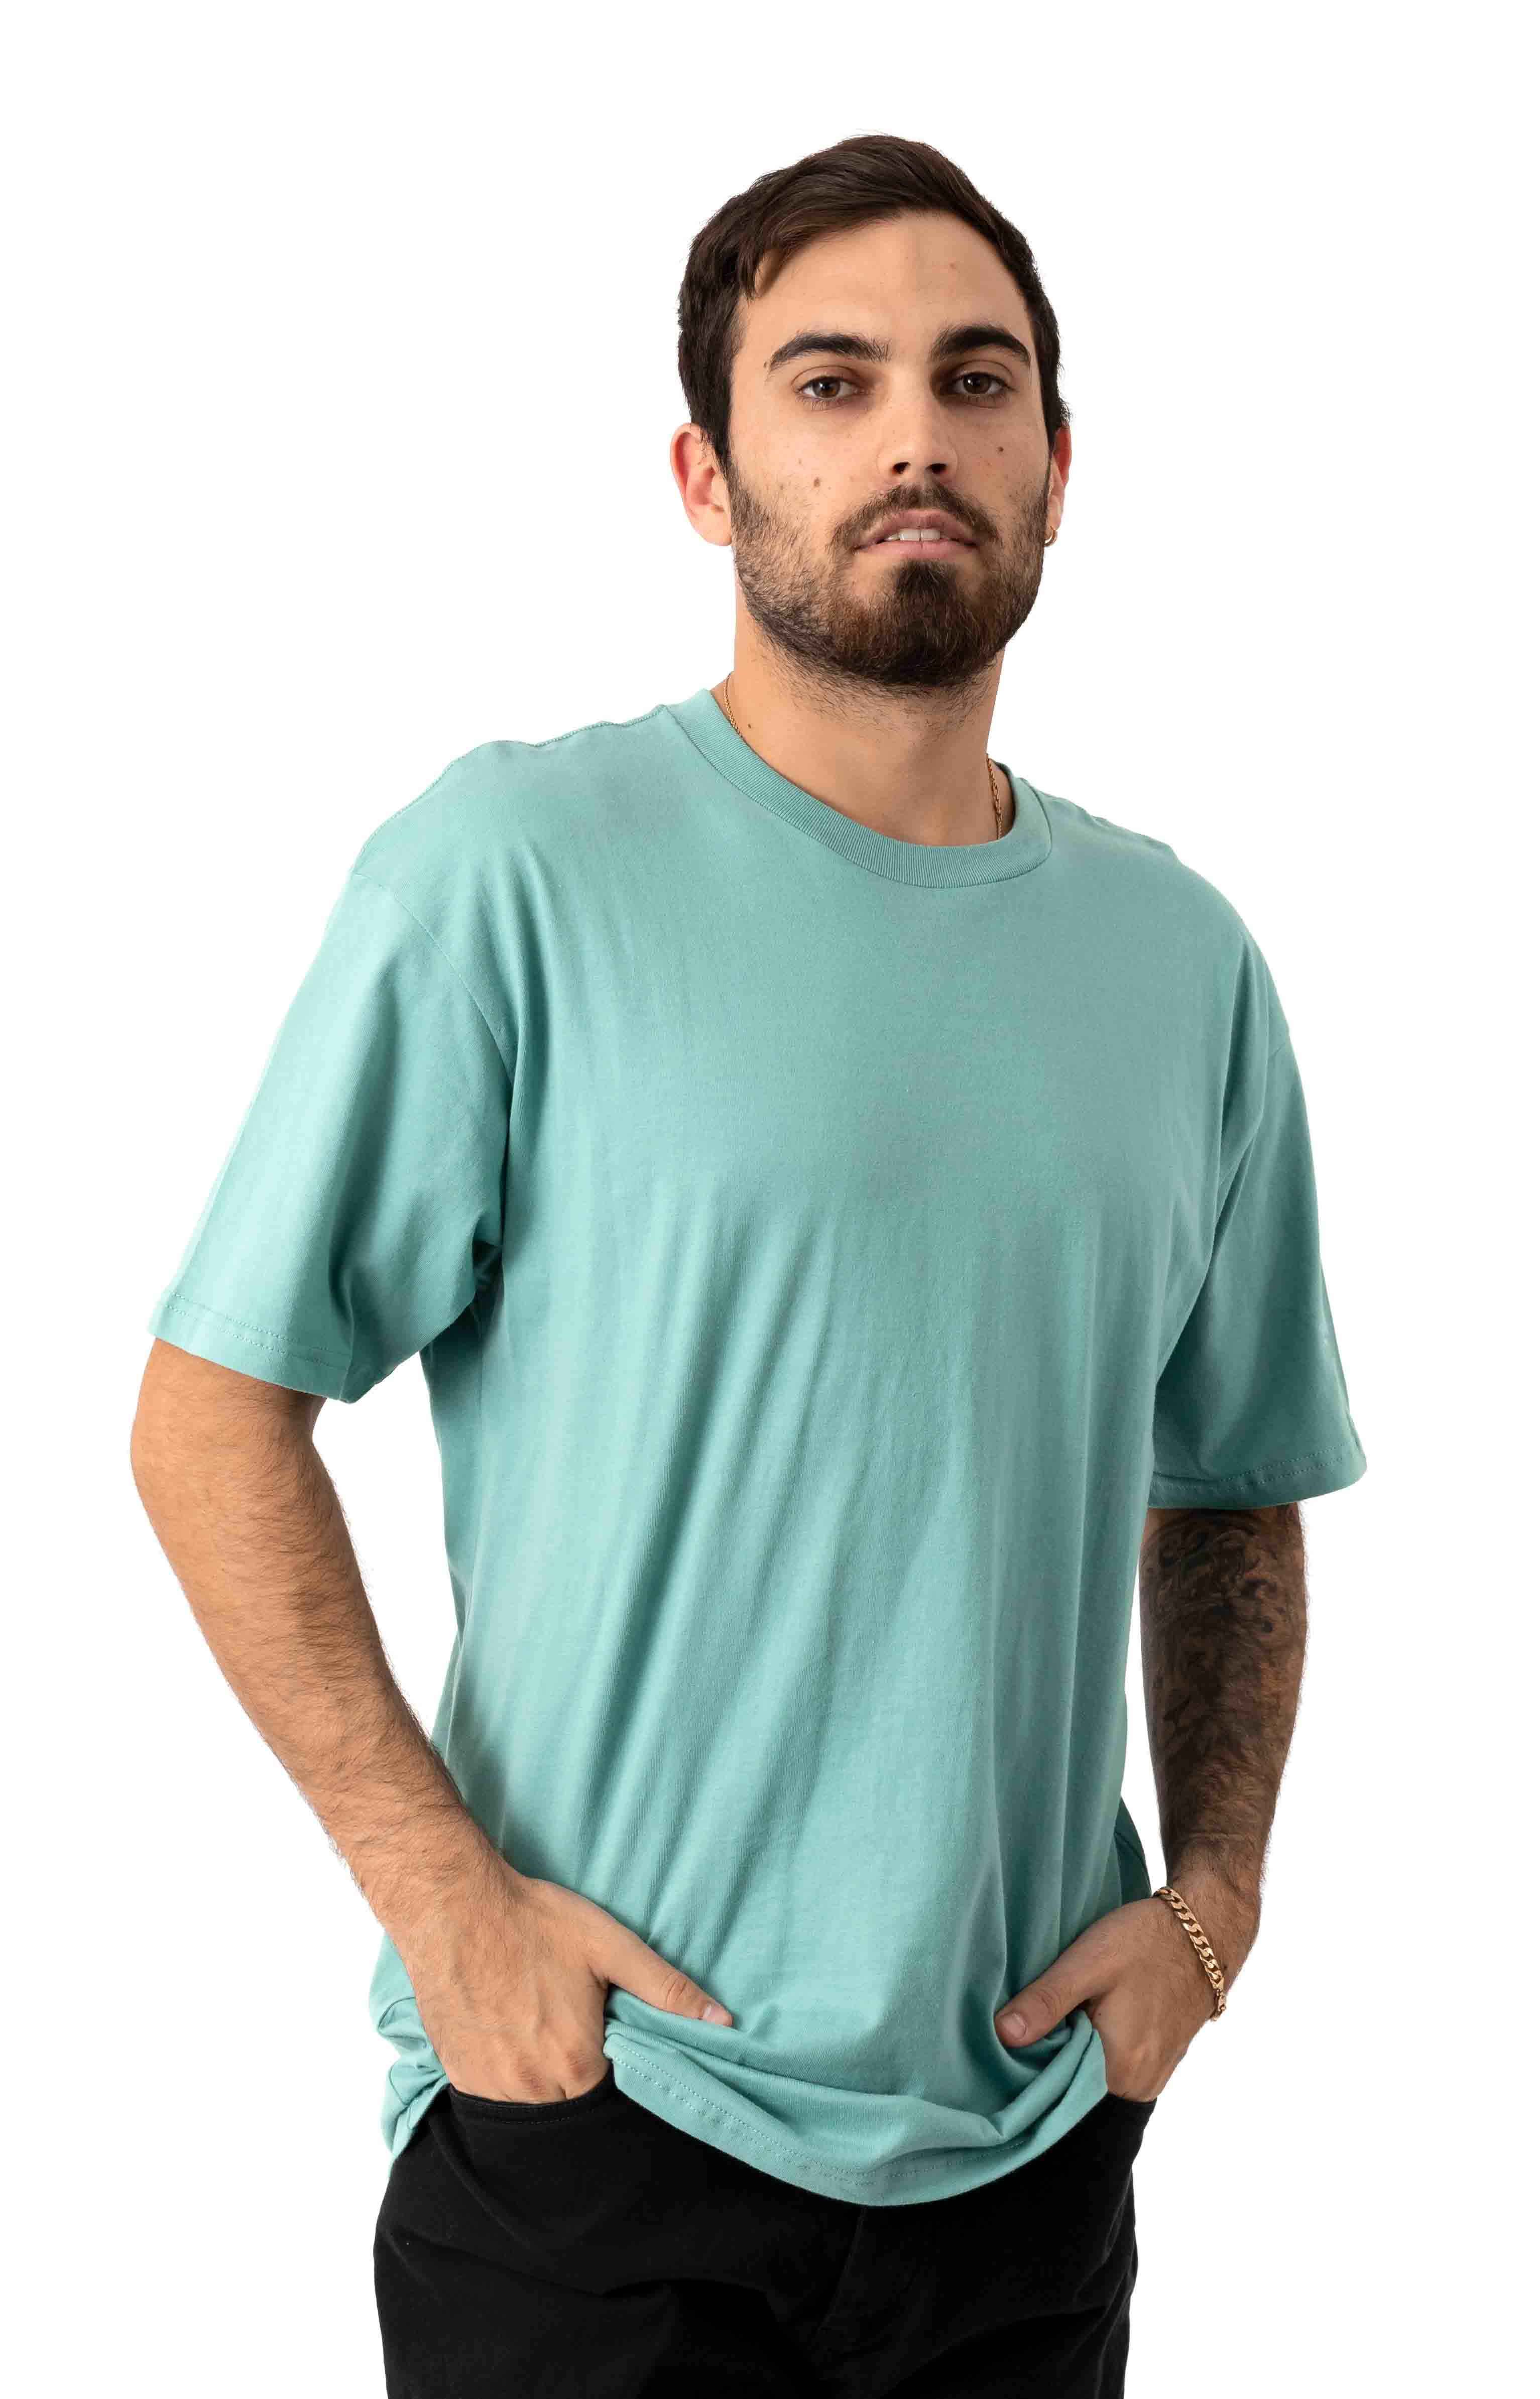 Elevated T-Shirt - Oil Blue 2